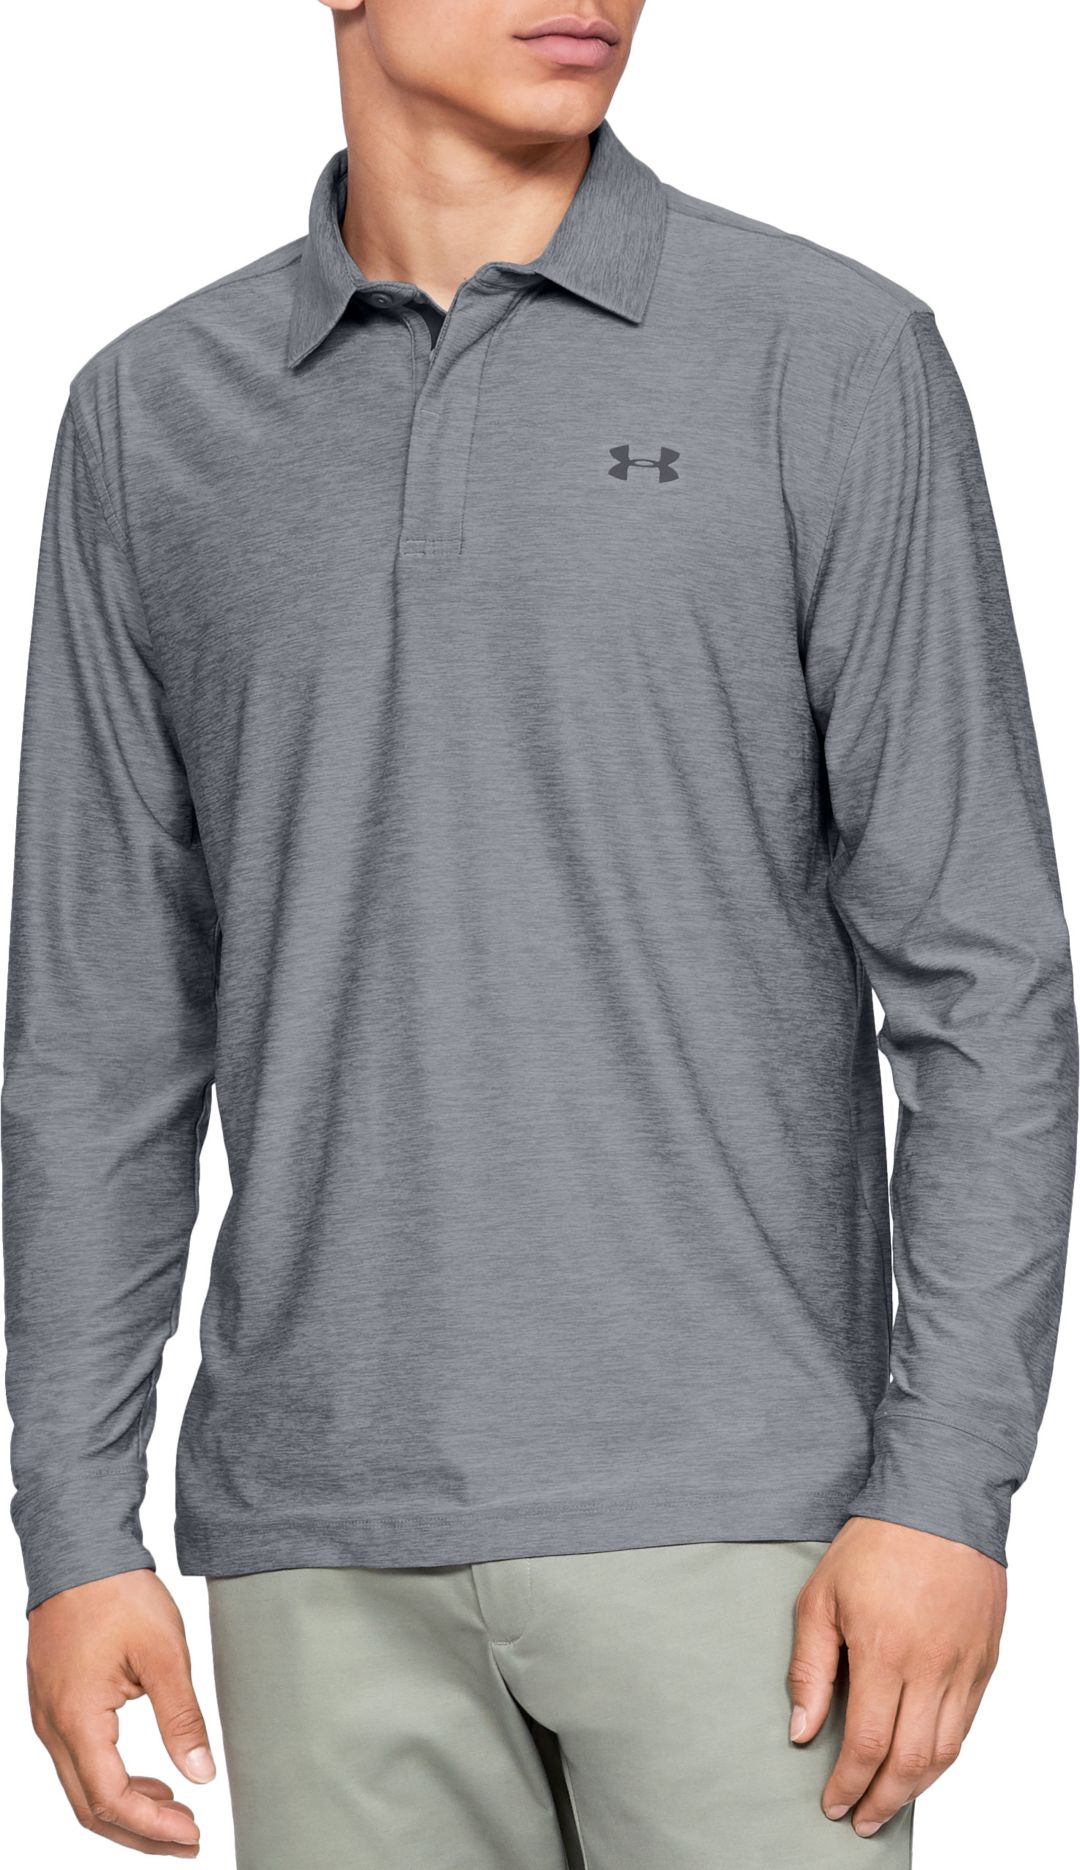 449c0947bb Under Armour Men's Long Sleeve Golf Polo | DICK'S Sporting Goods